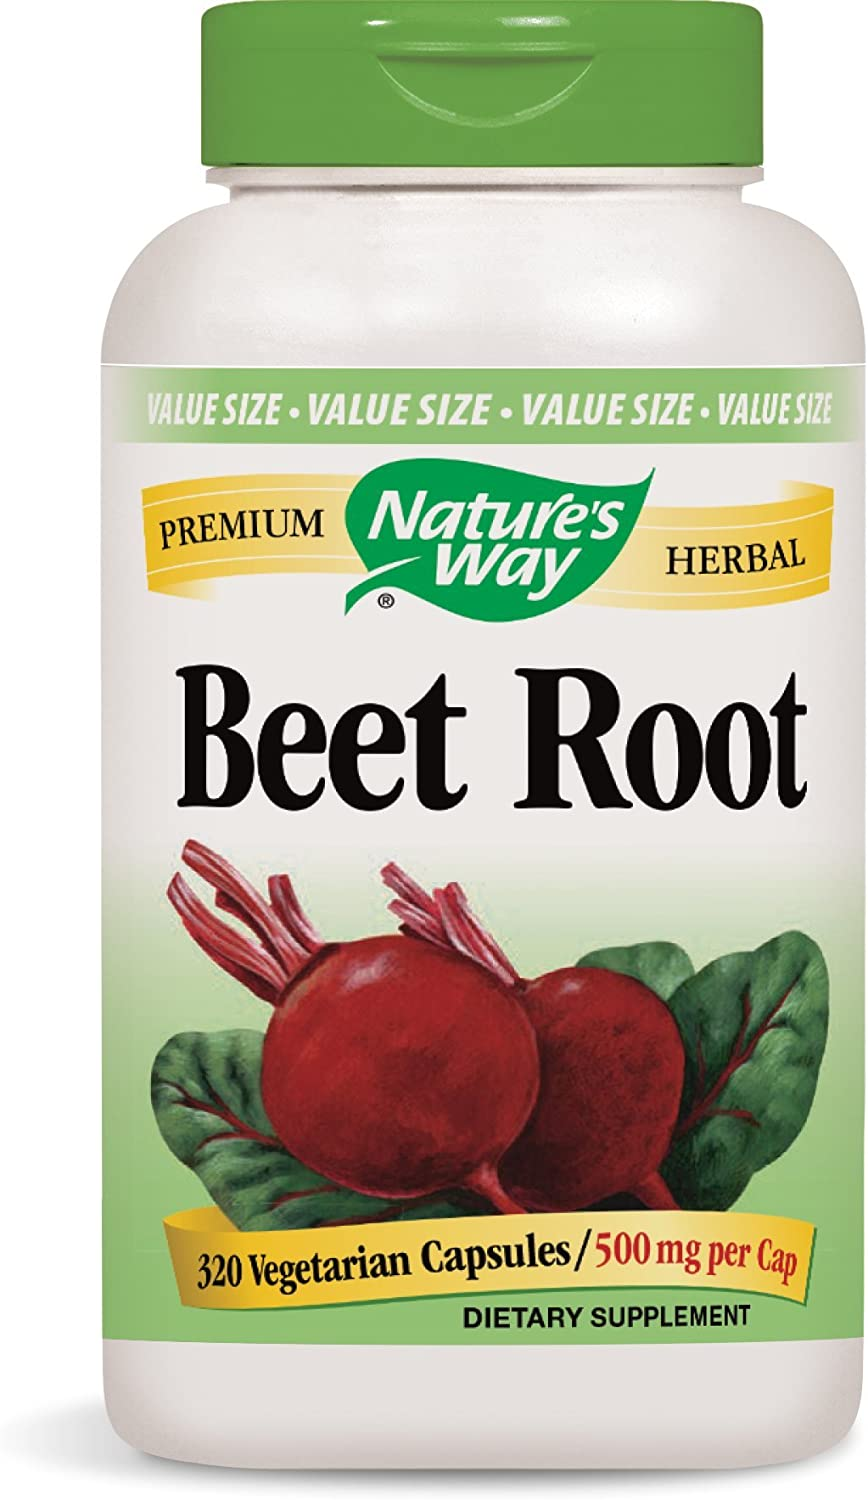 Nature's Way Beet Root; 1 gram Beet Root per serving; TRU-ID Certified; Gluten-Free; Vegetarian; 320 Capsules